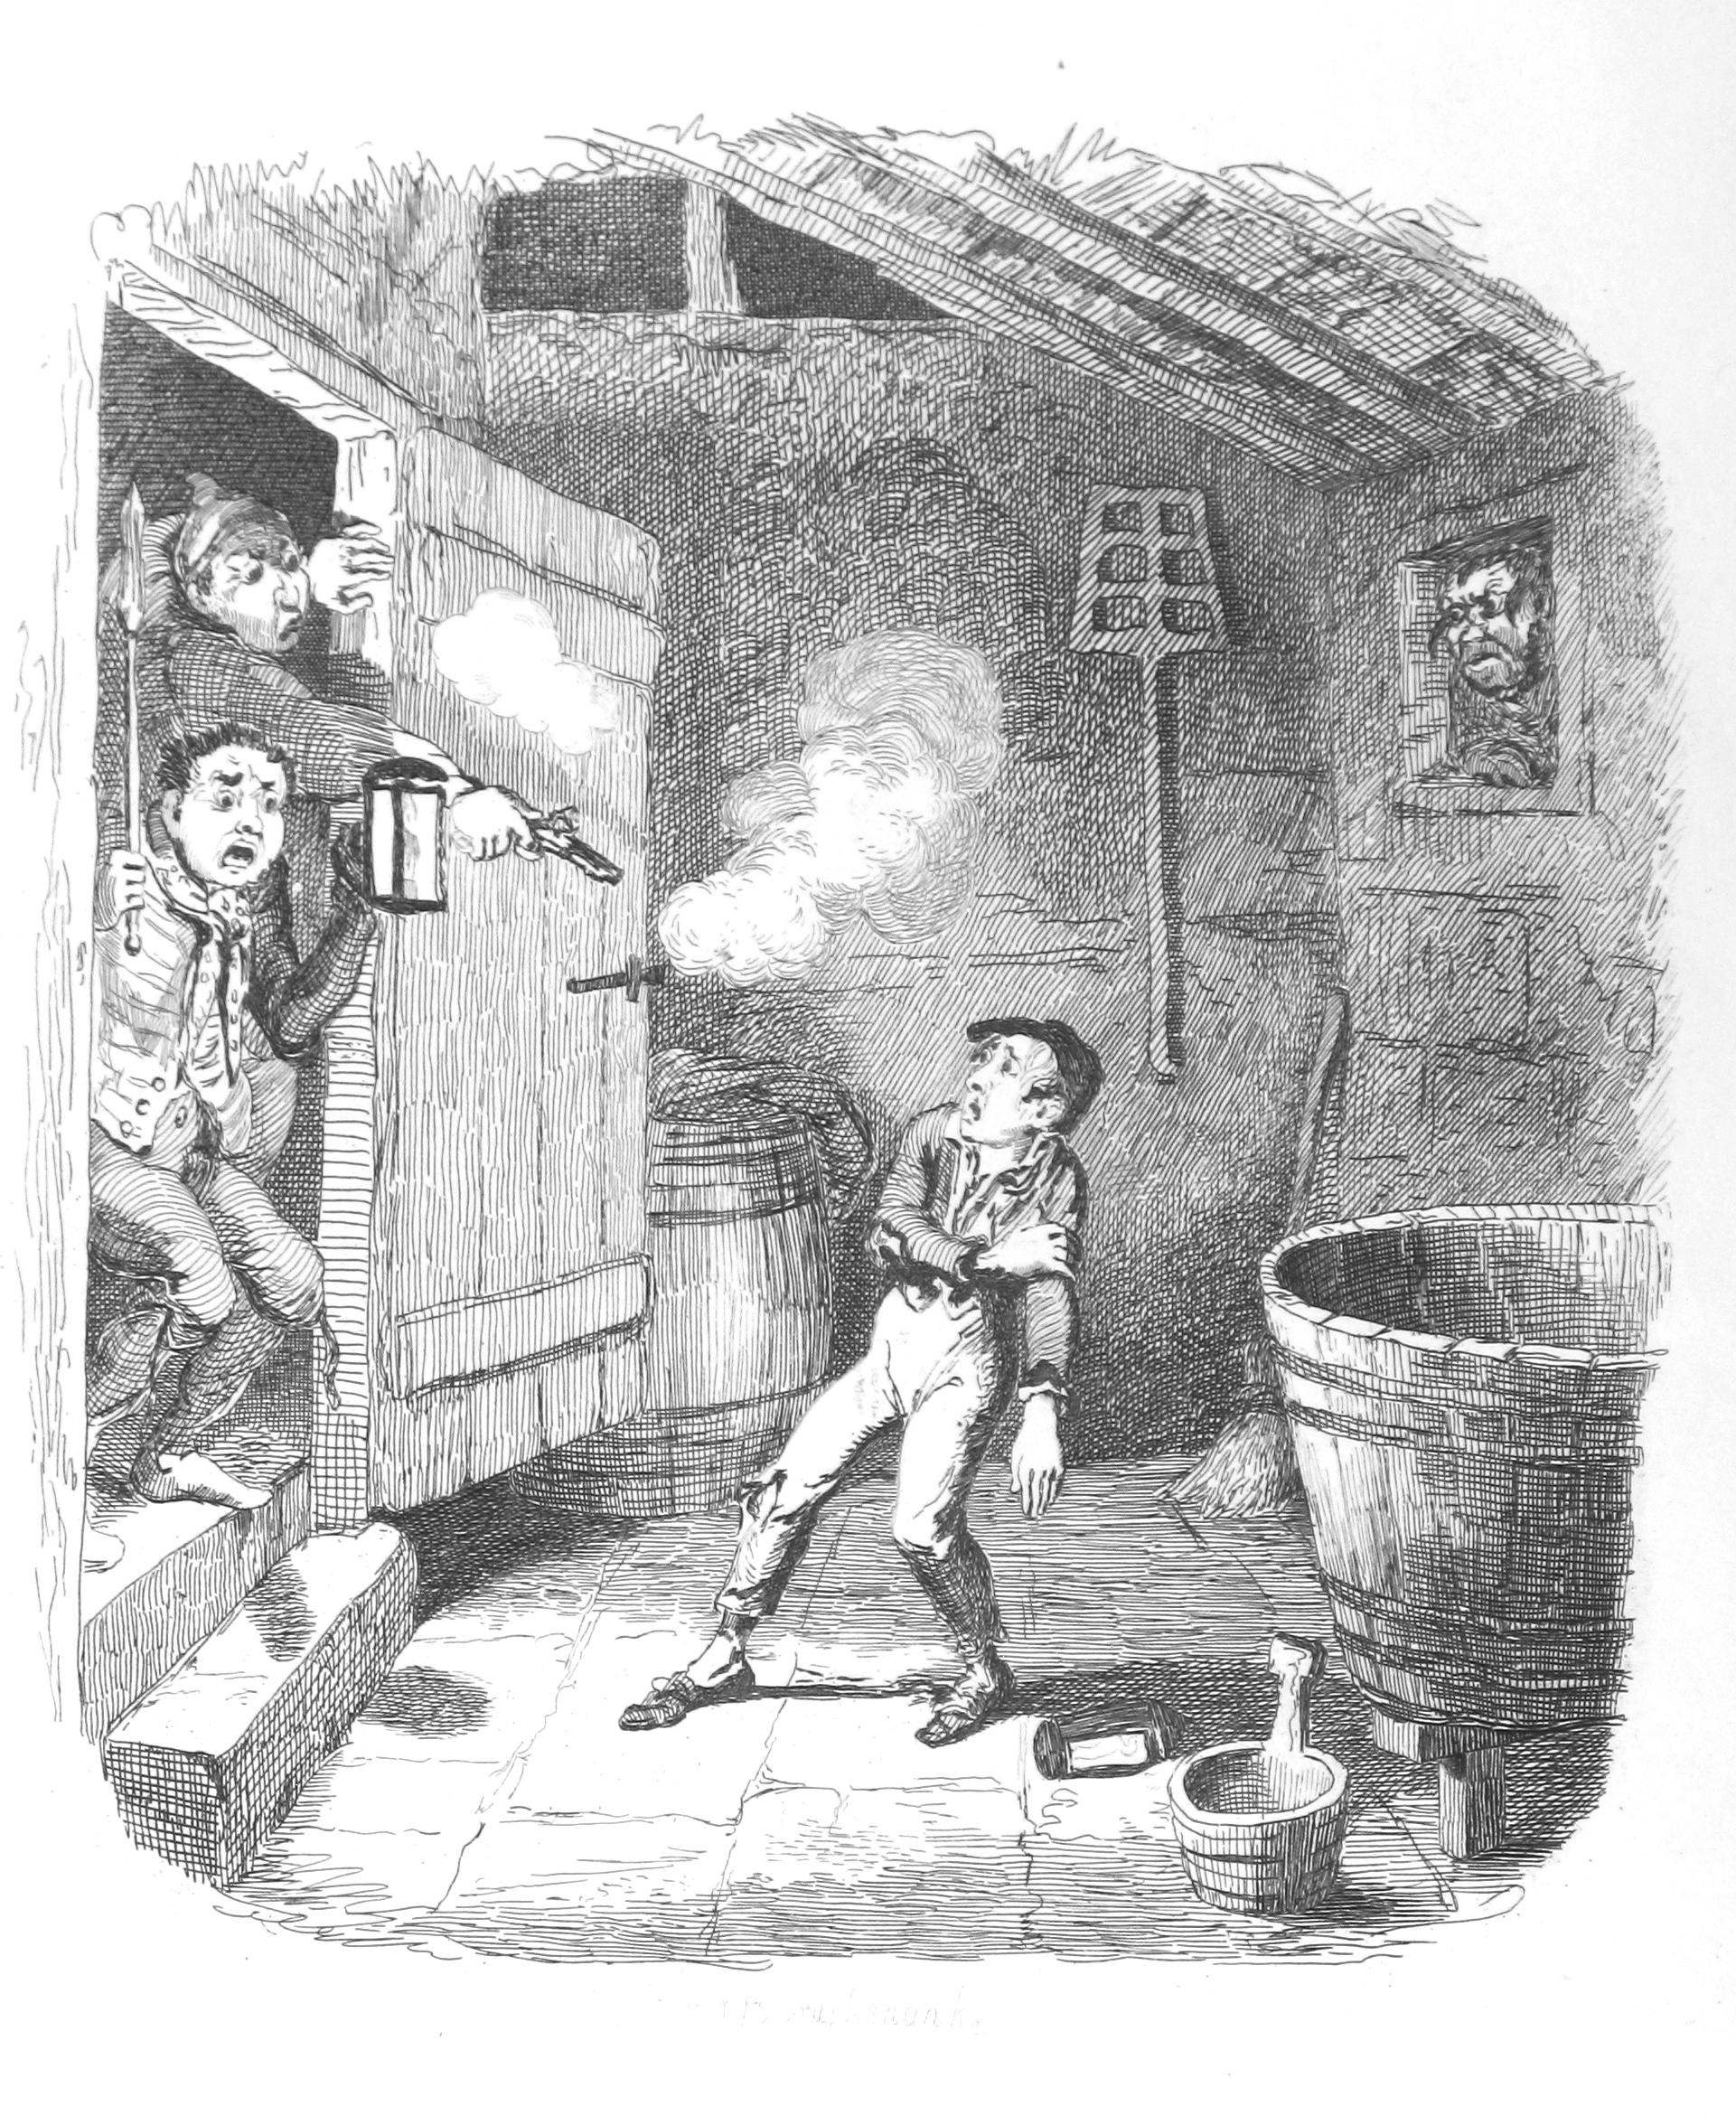 compassion in oliver twist discusses three characters who express  copy of the cruikshank drawing from charles dickens oliver twist